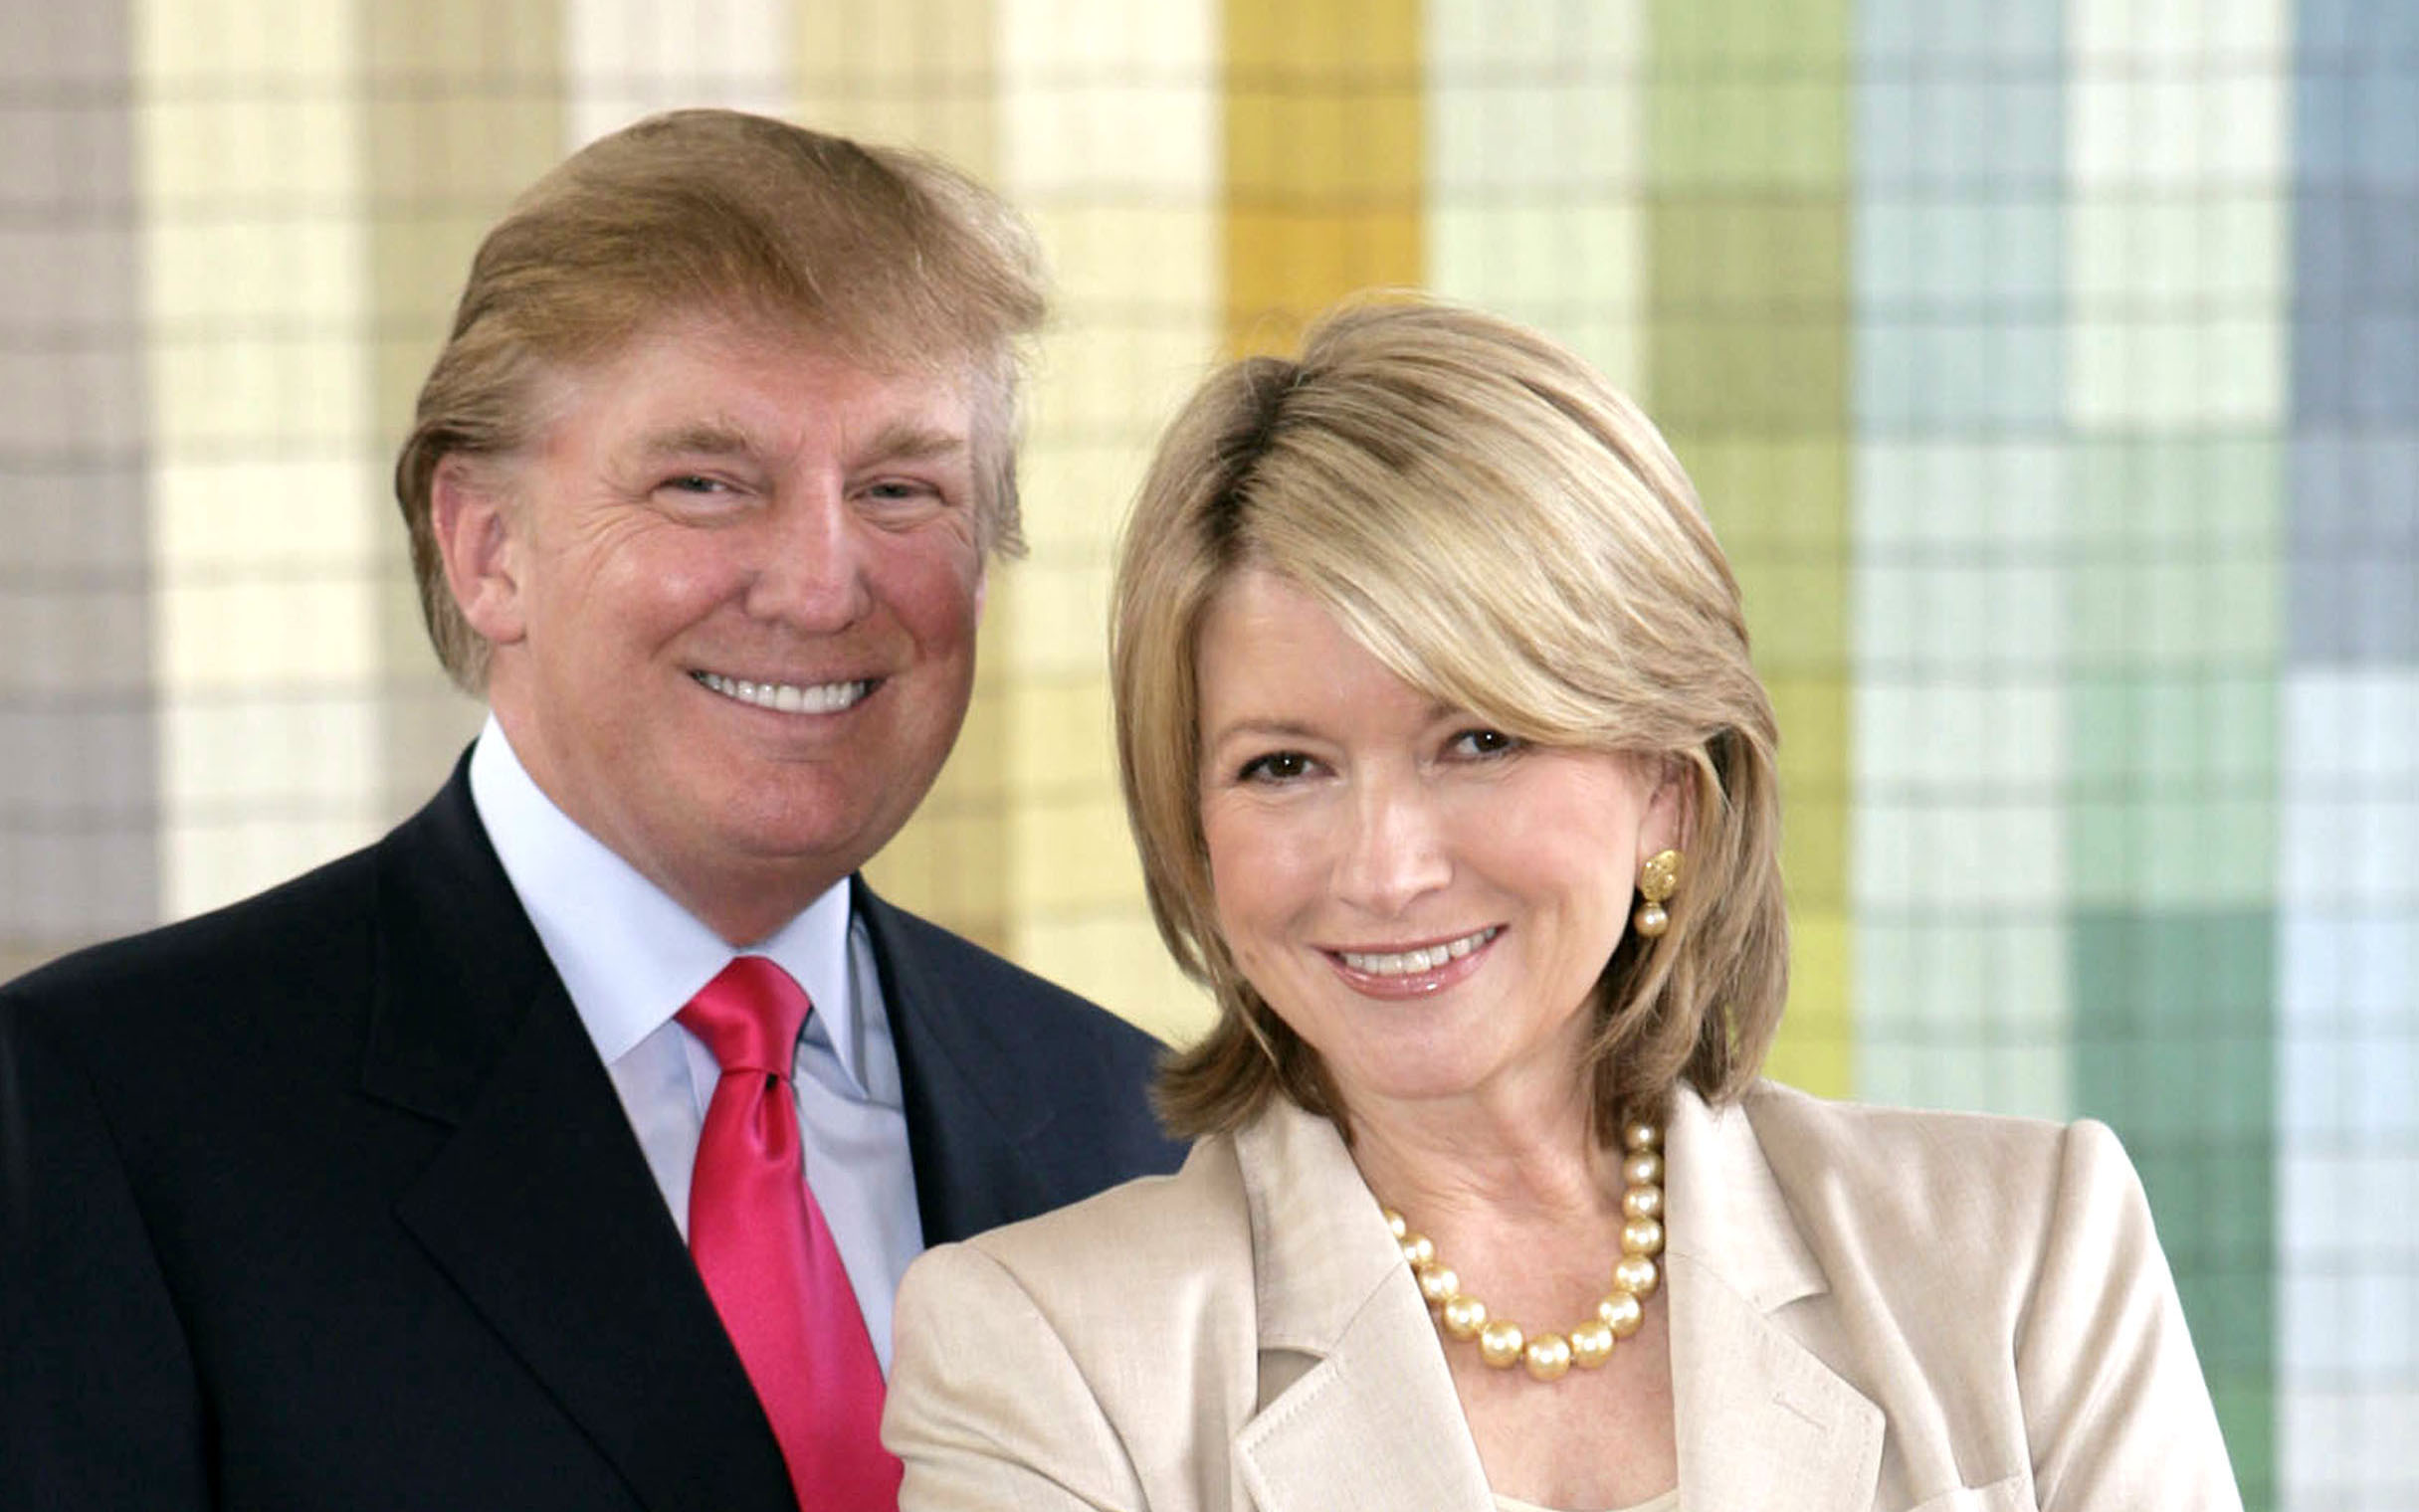 Martha Stewart and Donald Trump Tape NBC Promotions - August 8, 2005